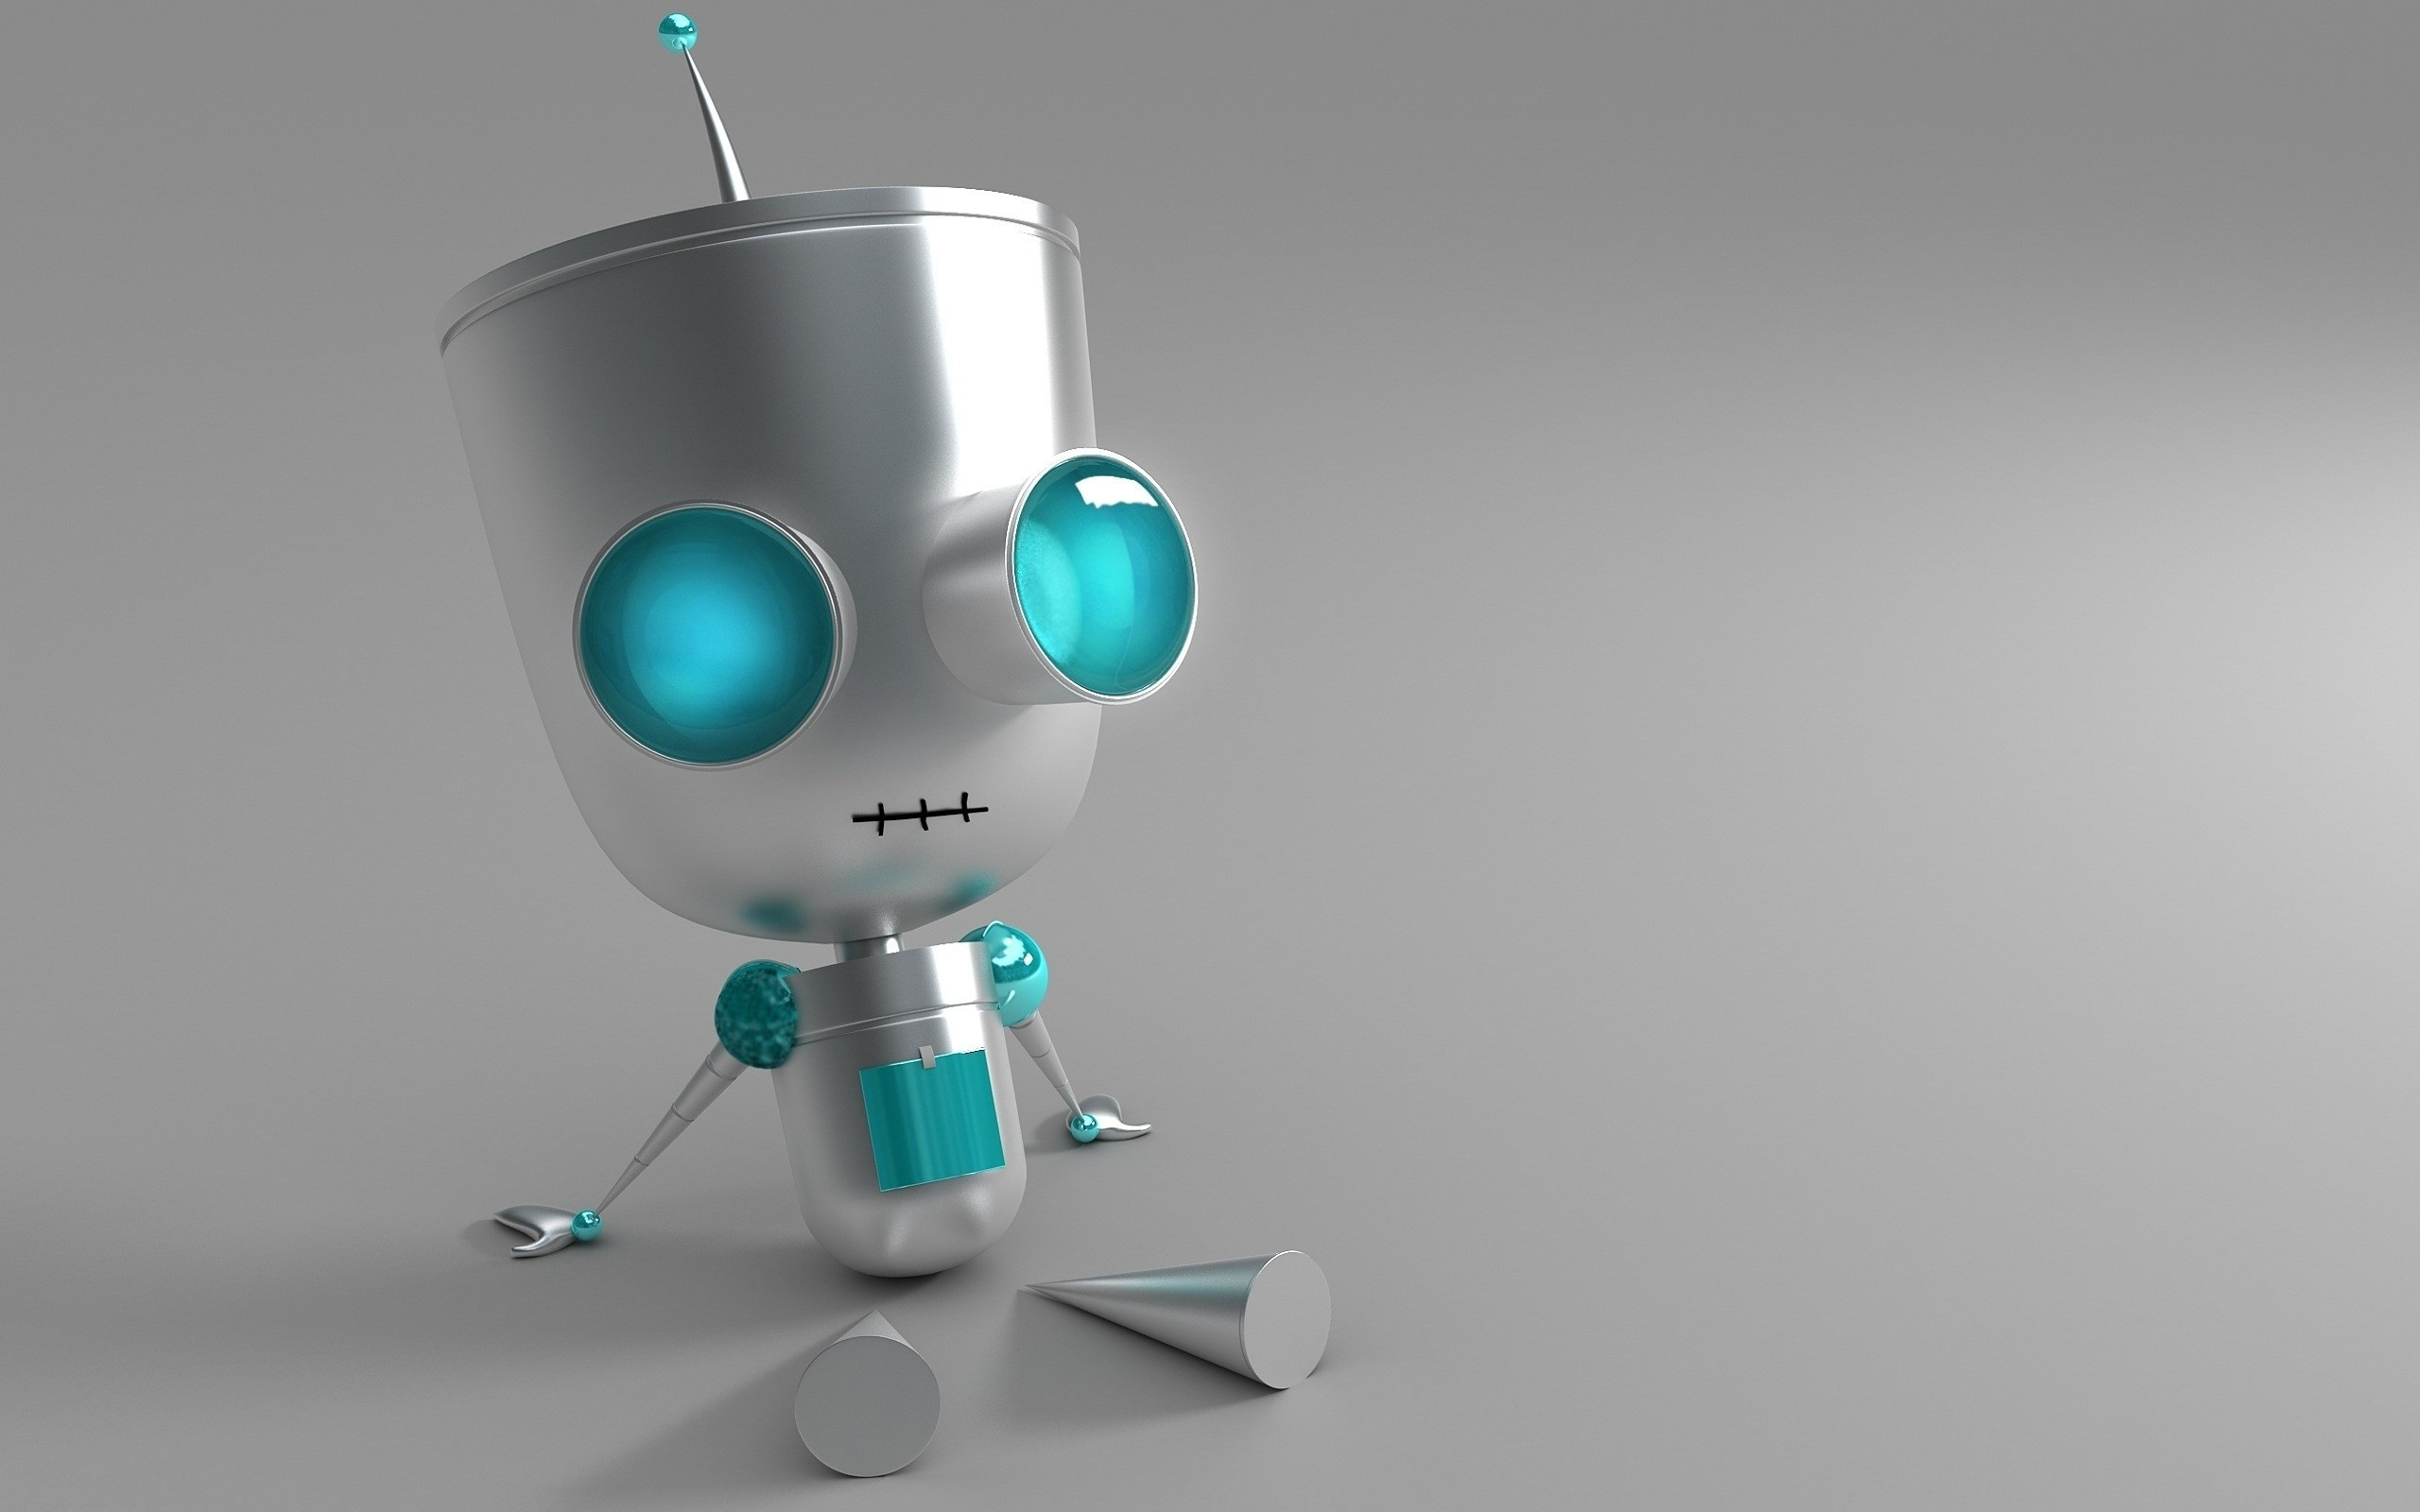 cool robot wallpaper (64+ images)